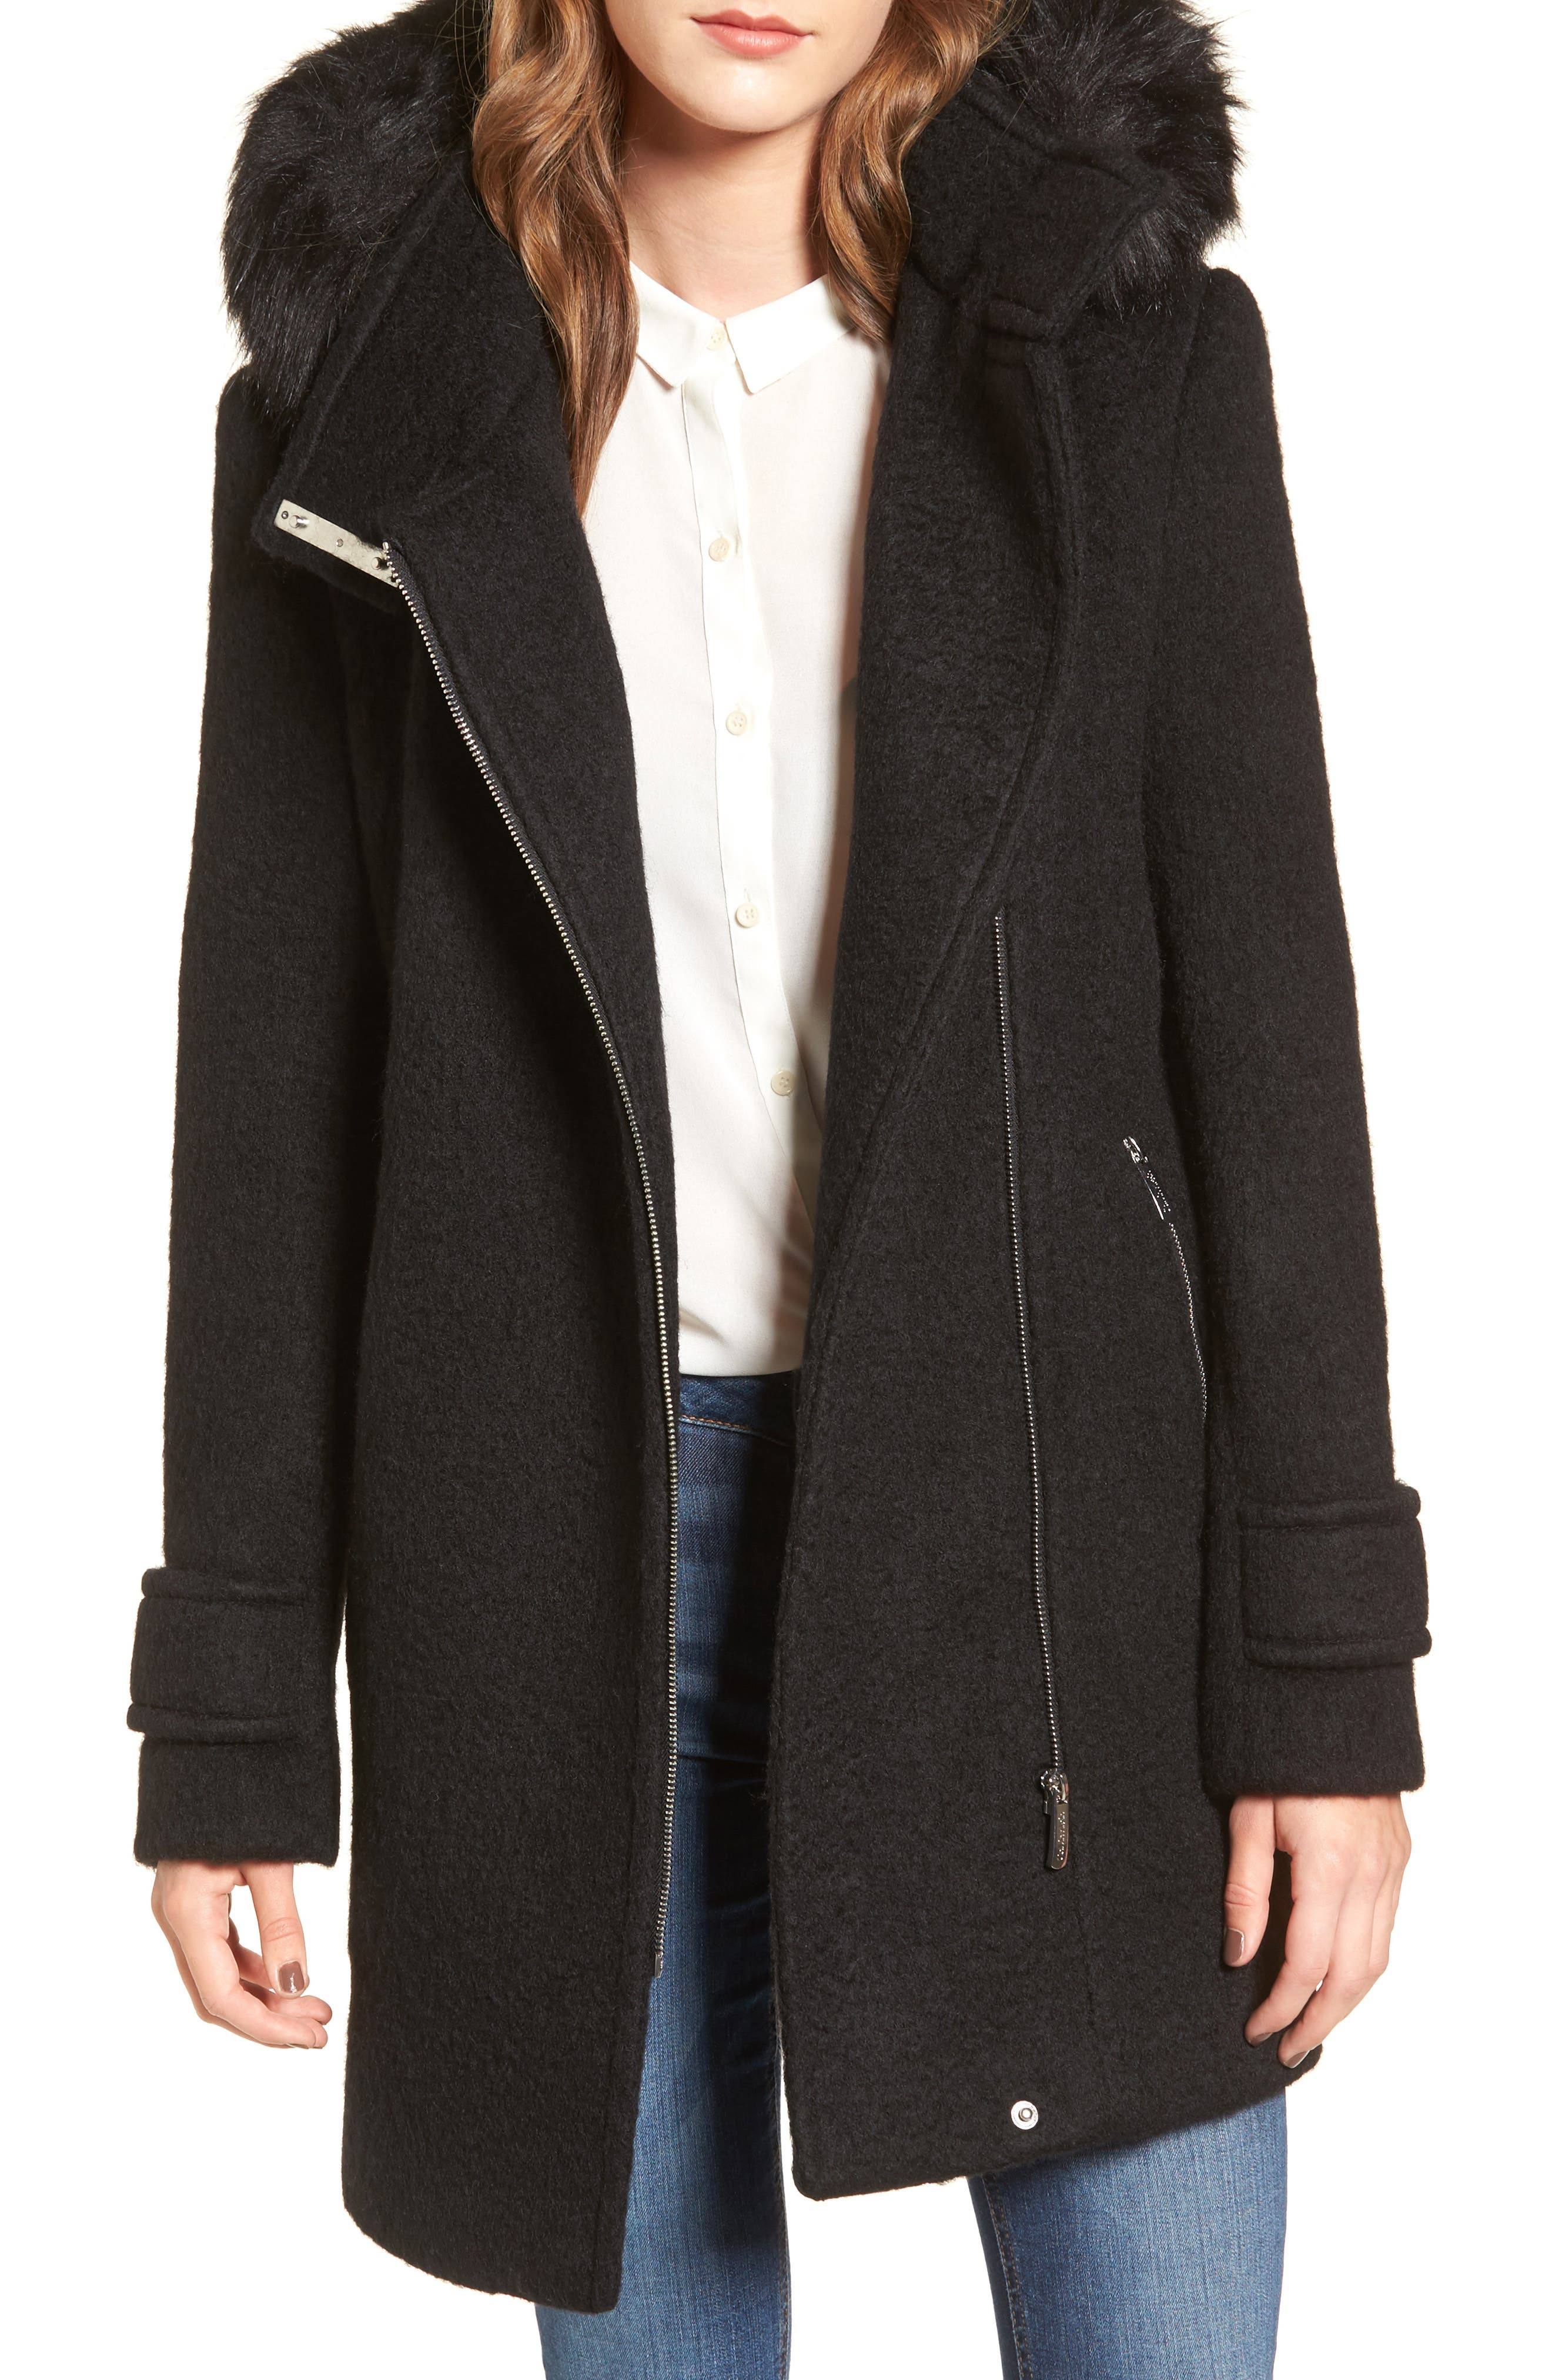 Main Image - Calvin Klein Hooded Wool Blend Jacket with Faux Fur Trim